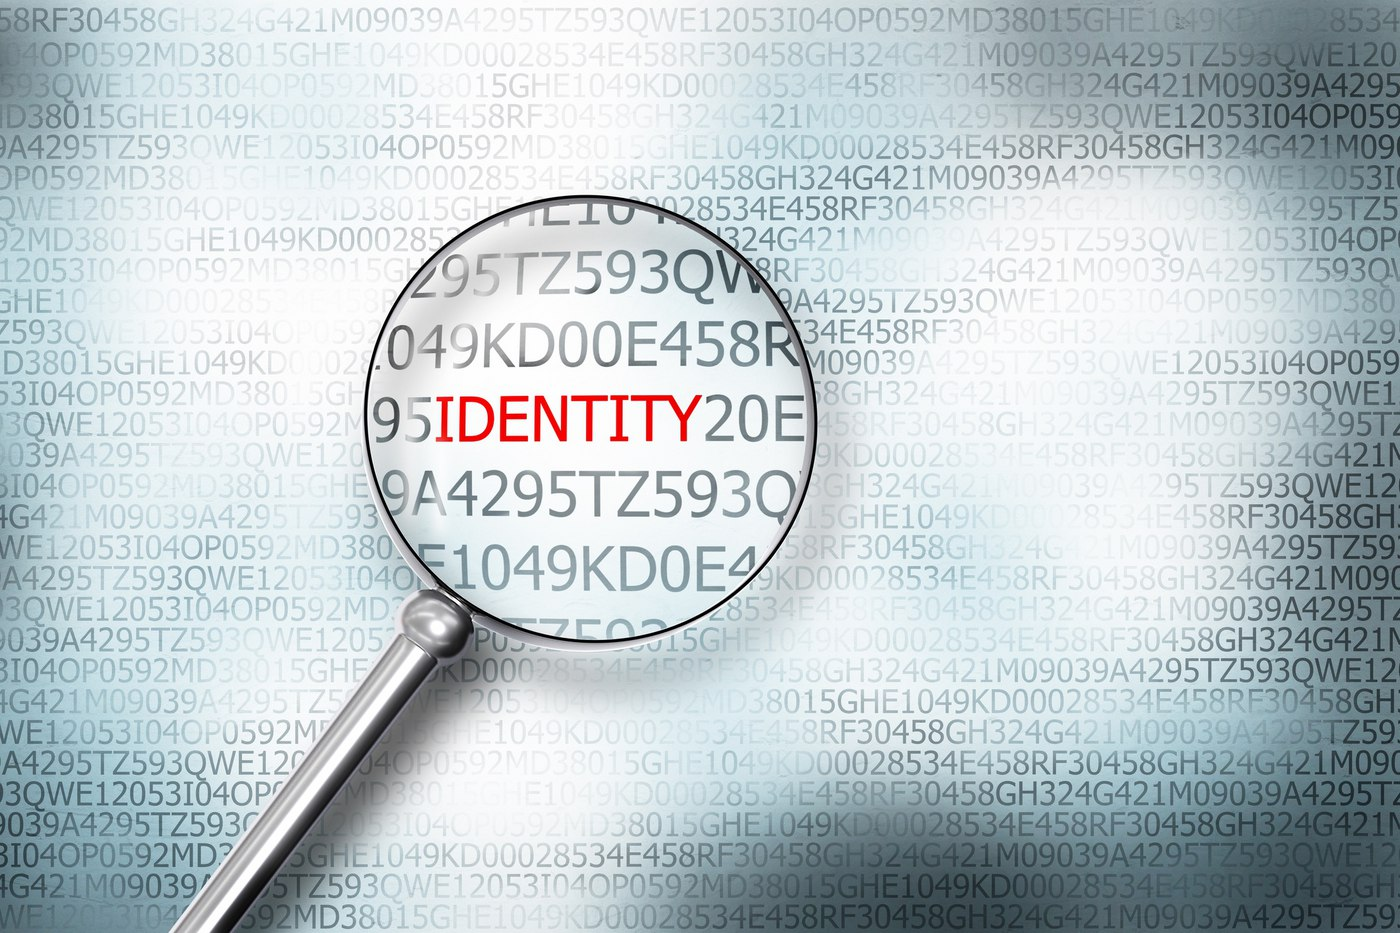 Identity Management To-Do List Aligns with Cybersecurity